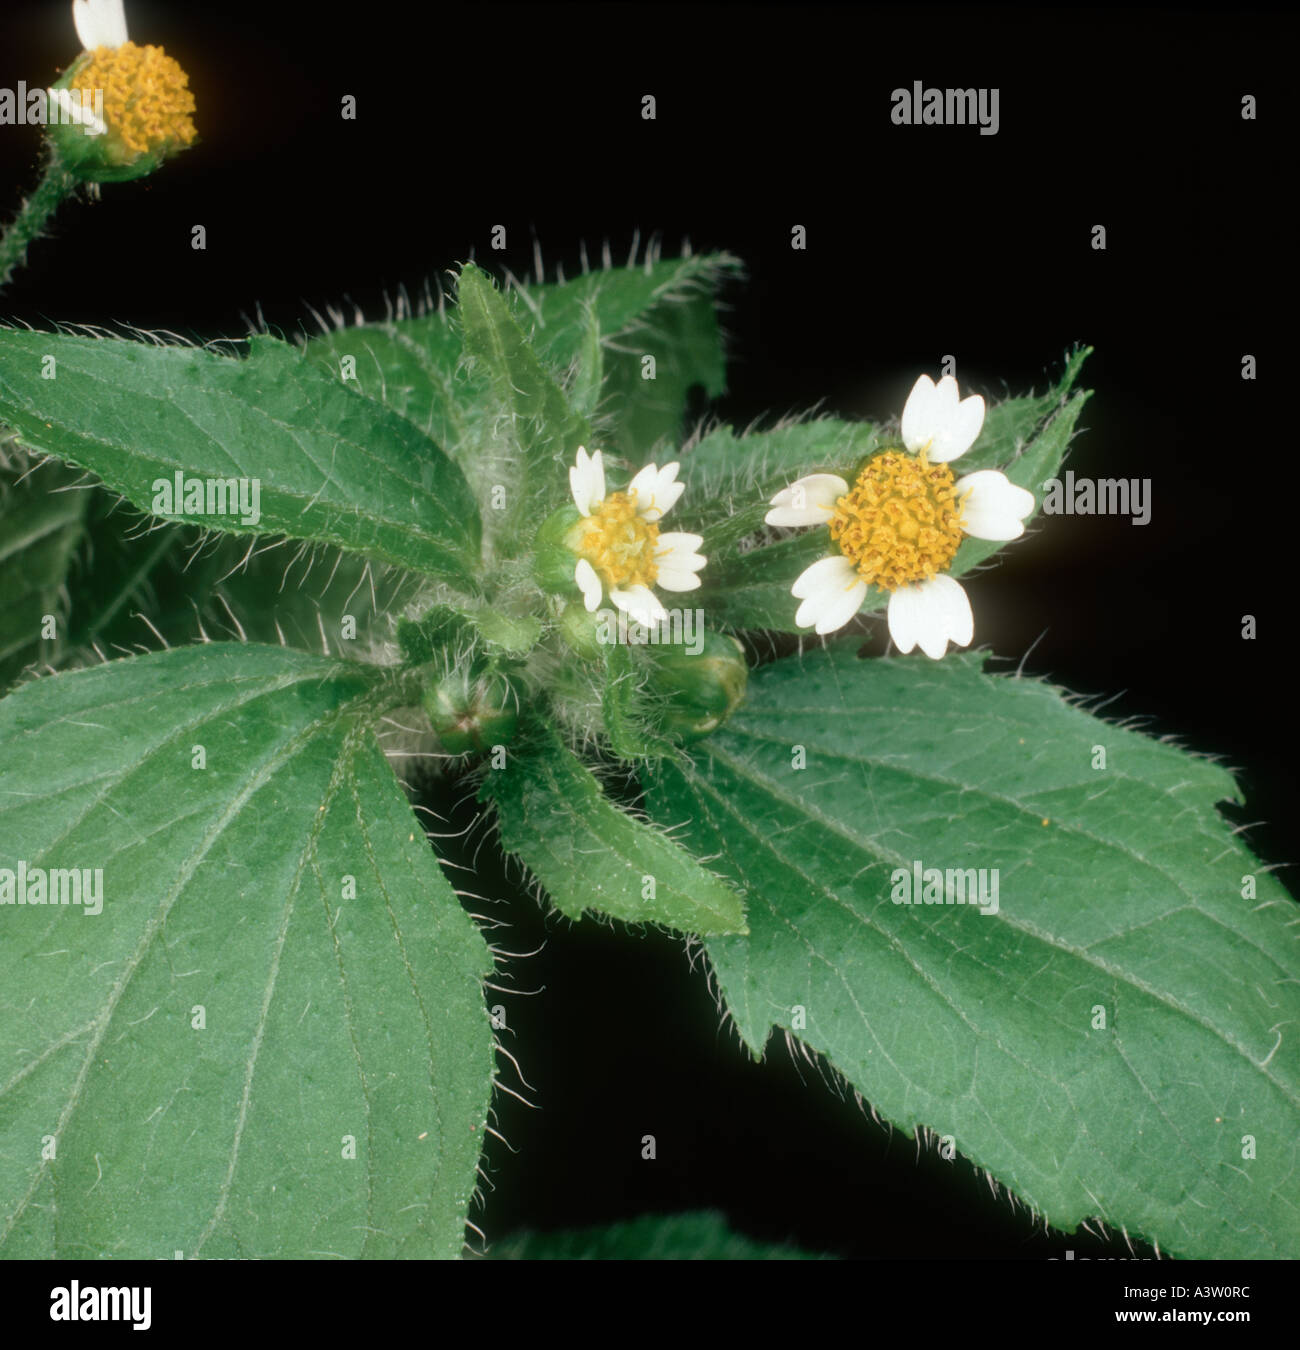 Gallant soldier flowers Galinsoga parviflora - Stock Image